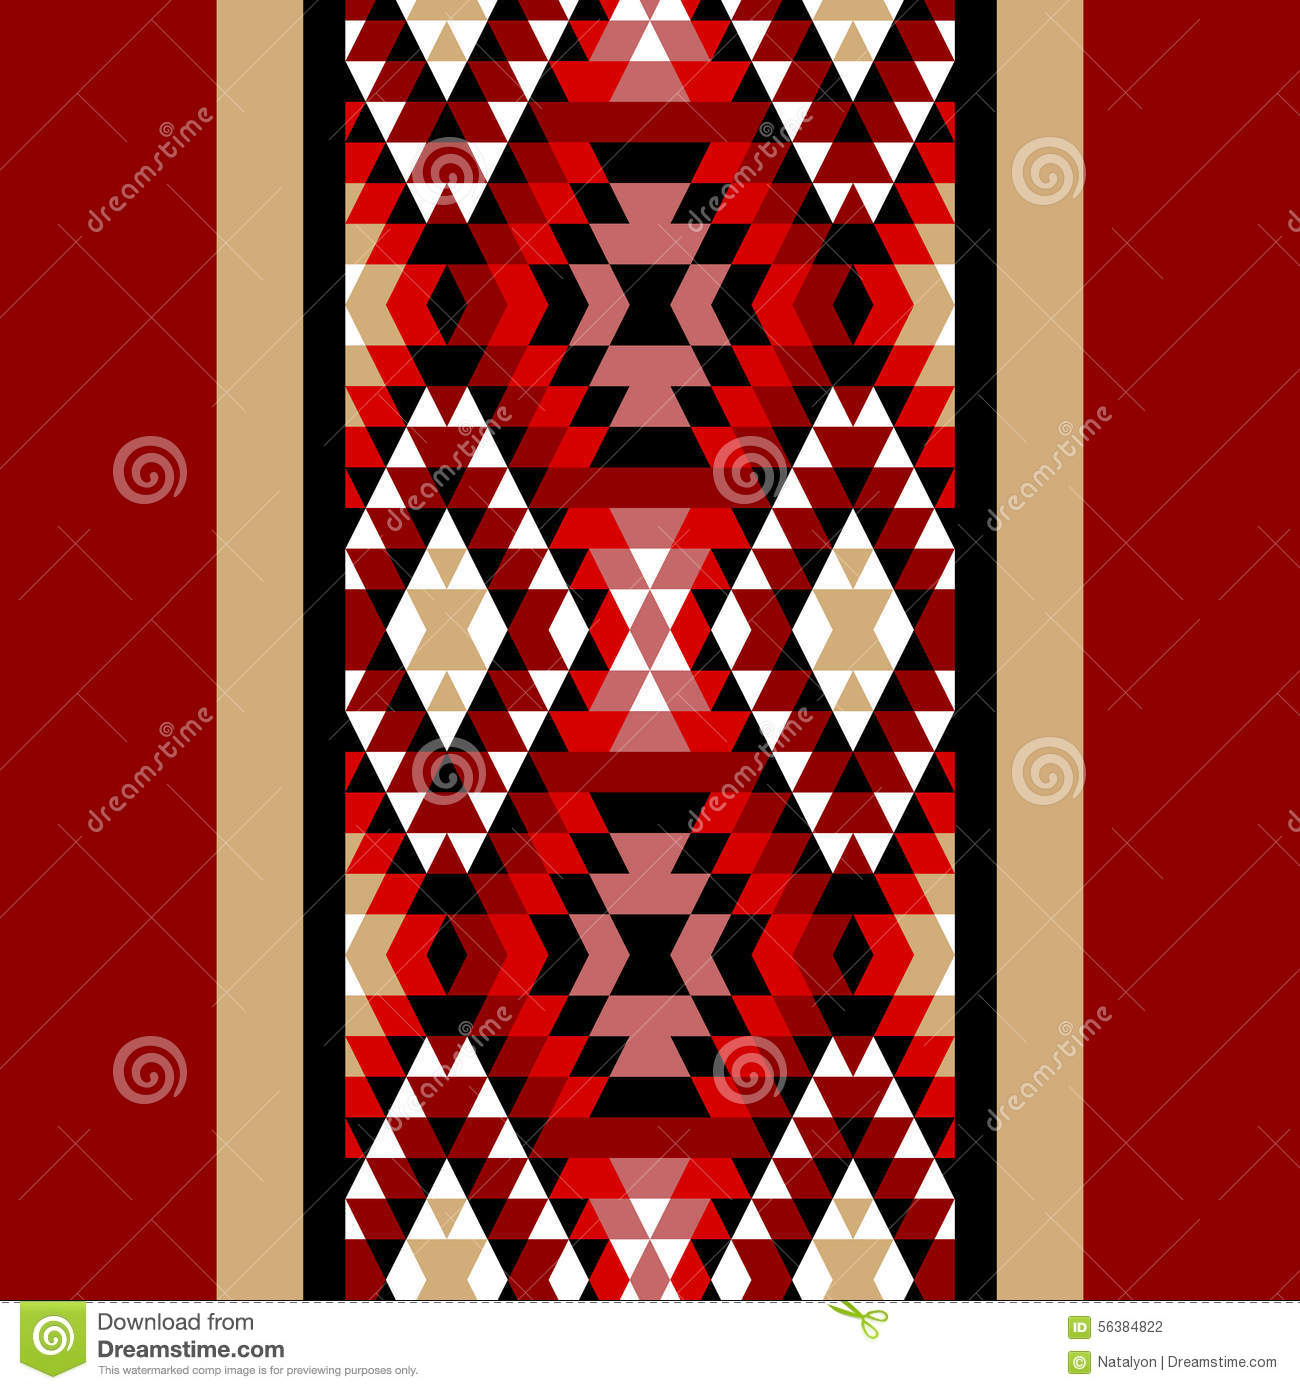 Colorful Red White And Black Aztec Ornaments Geometric